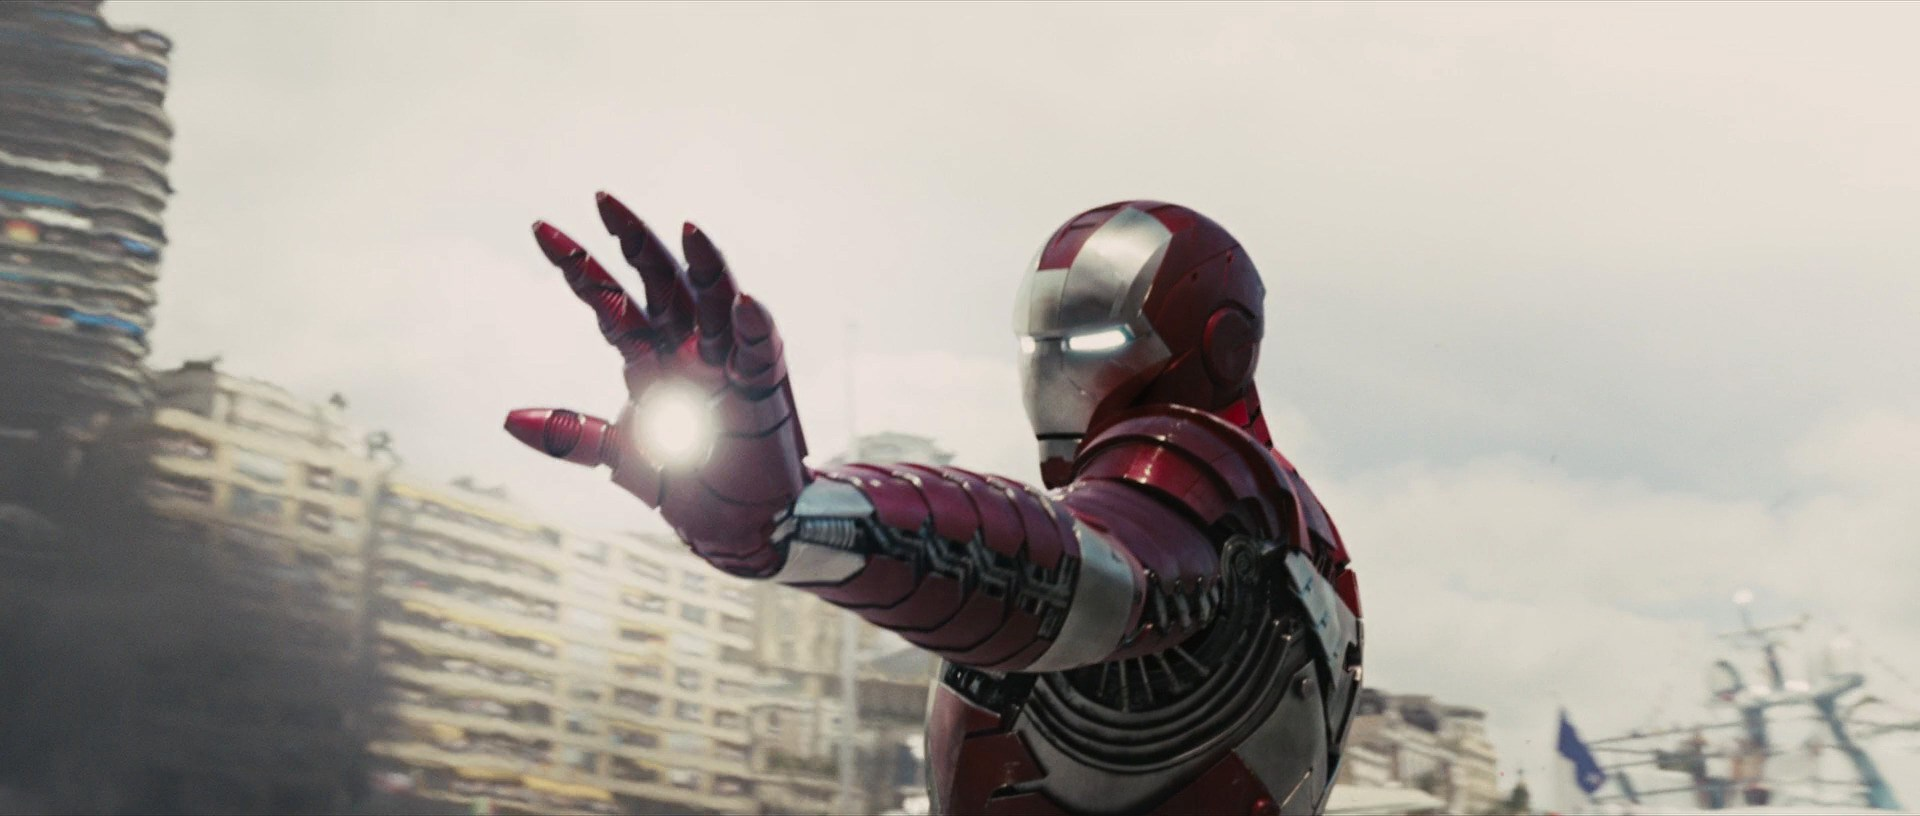 File:IRON-MAN-2-markV.jpg